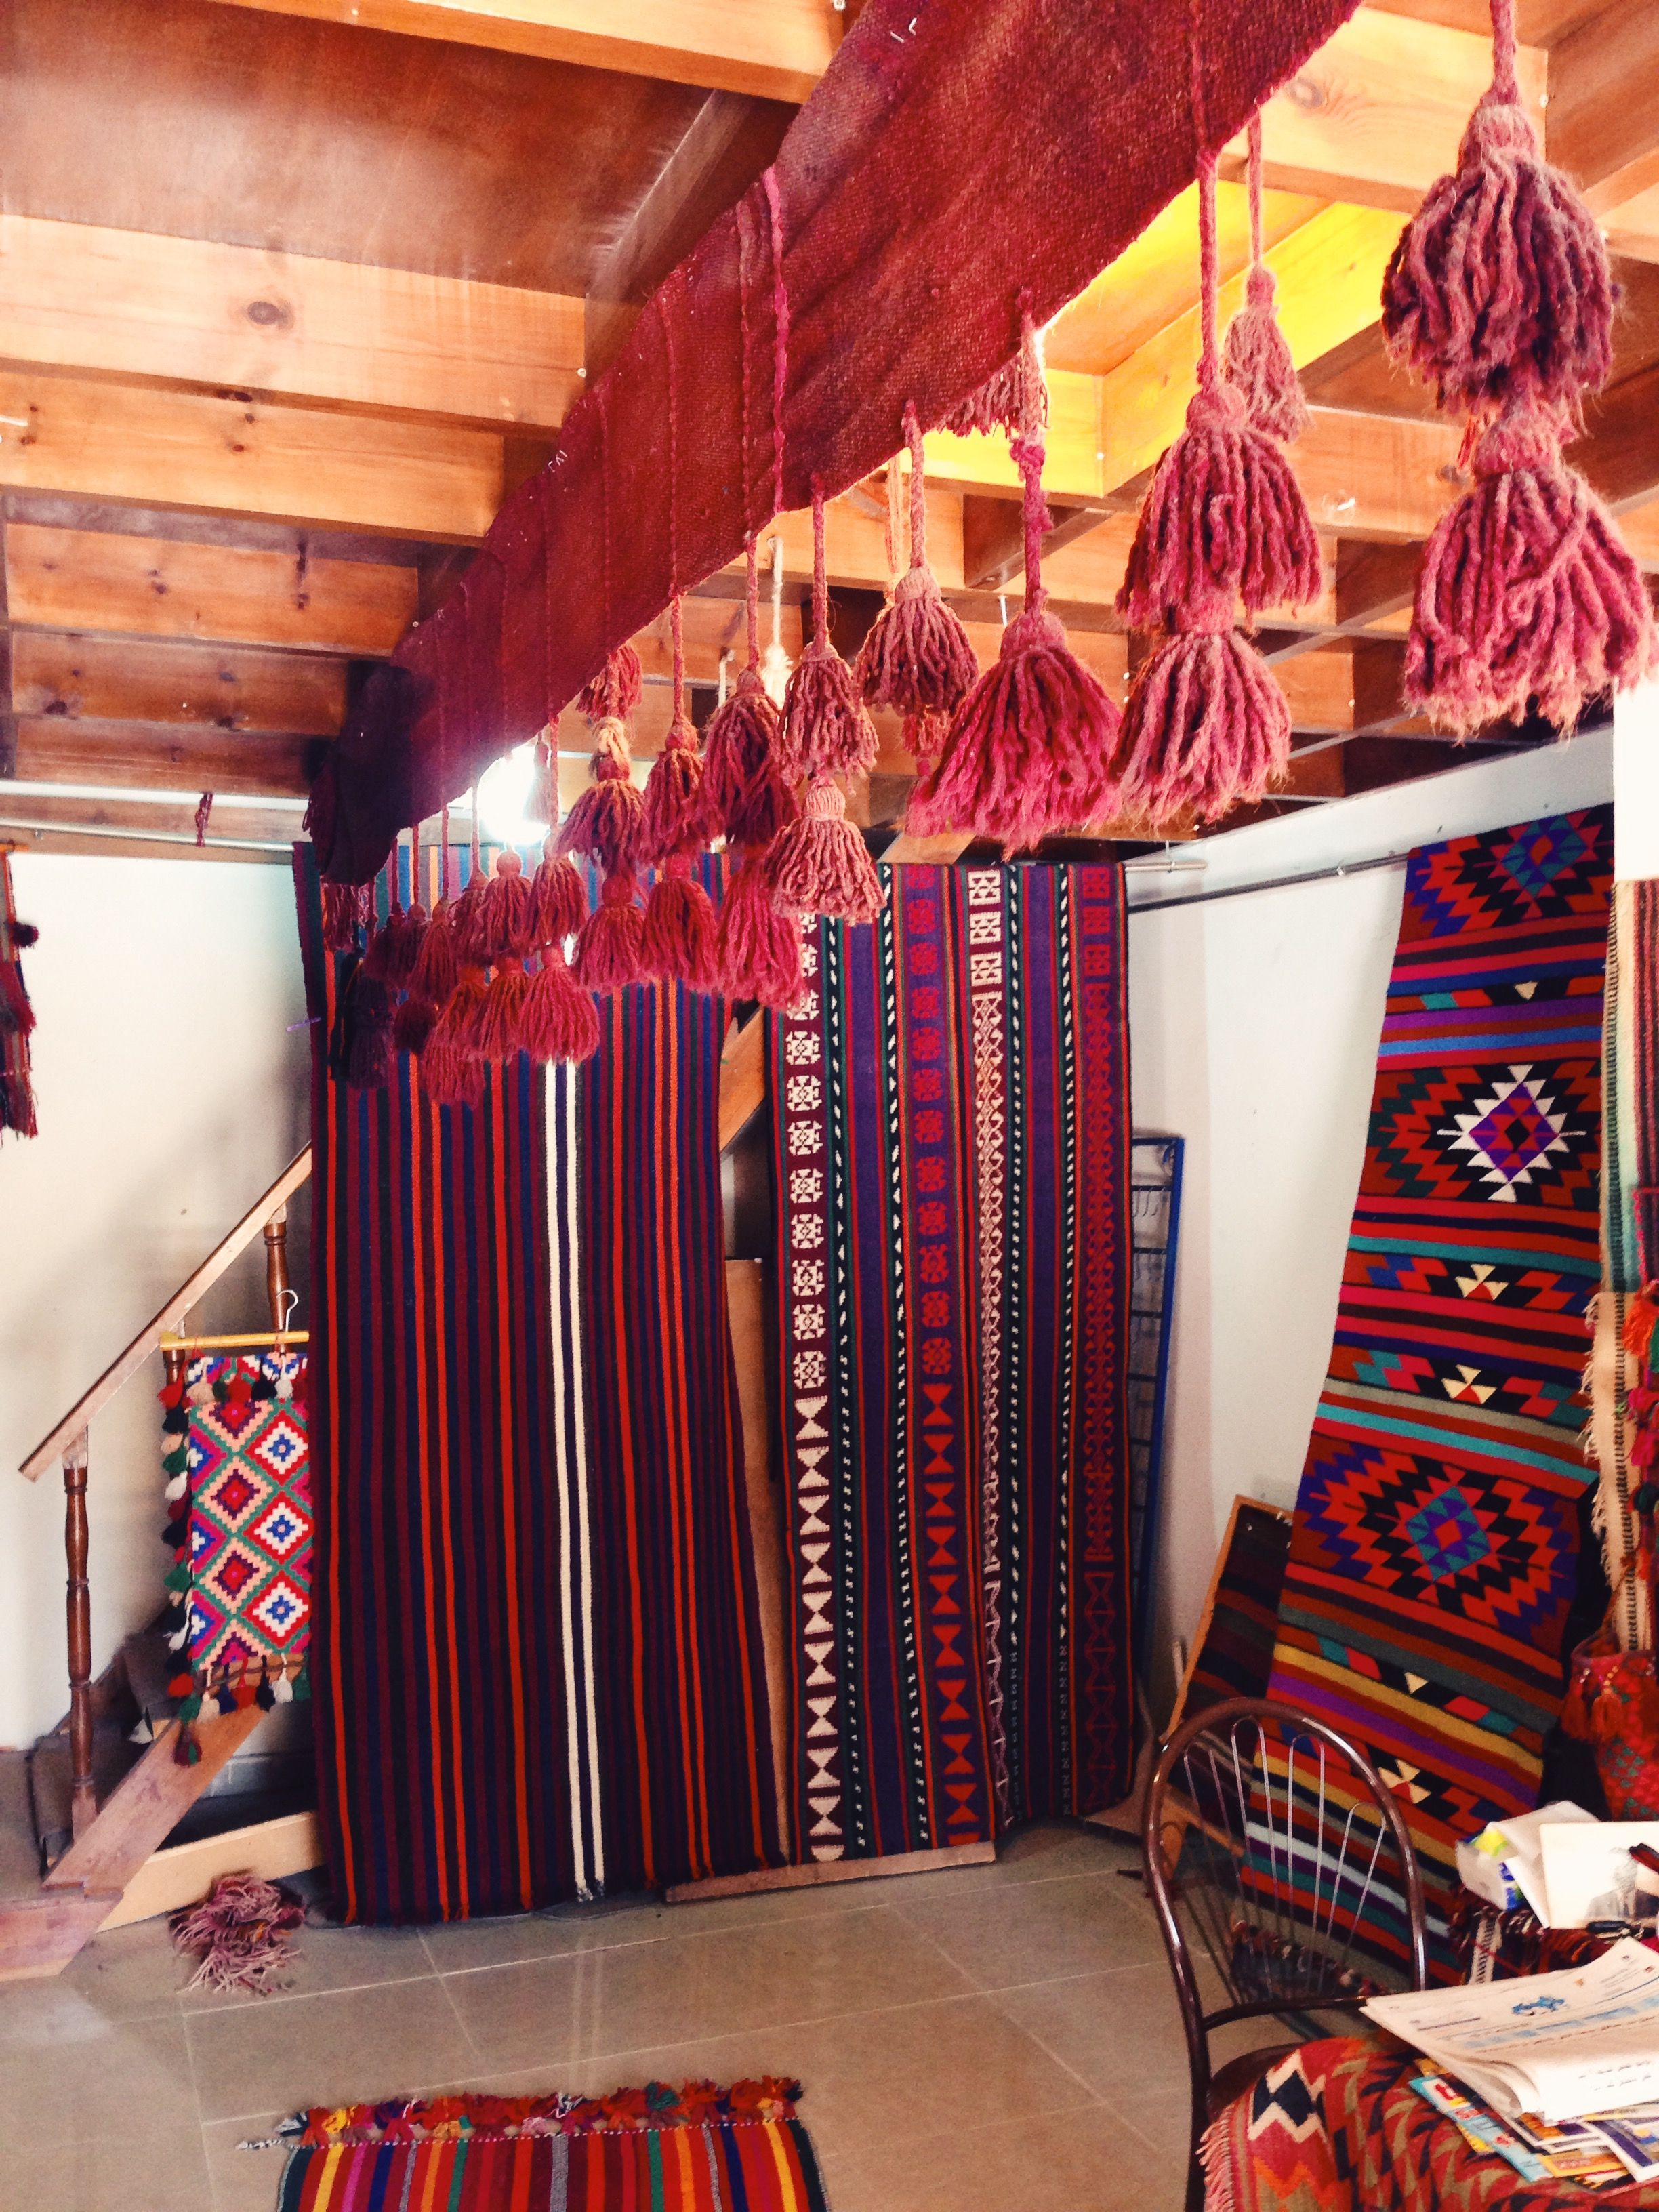 This is the interior of one of the best rug shops in Madaba, a small town about 30 minutes from Amman.  The owner is the sweetest old man, who really cares about the quality of his products, as well as paying fair prices to the Bedouin weavers who make the rugs.